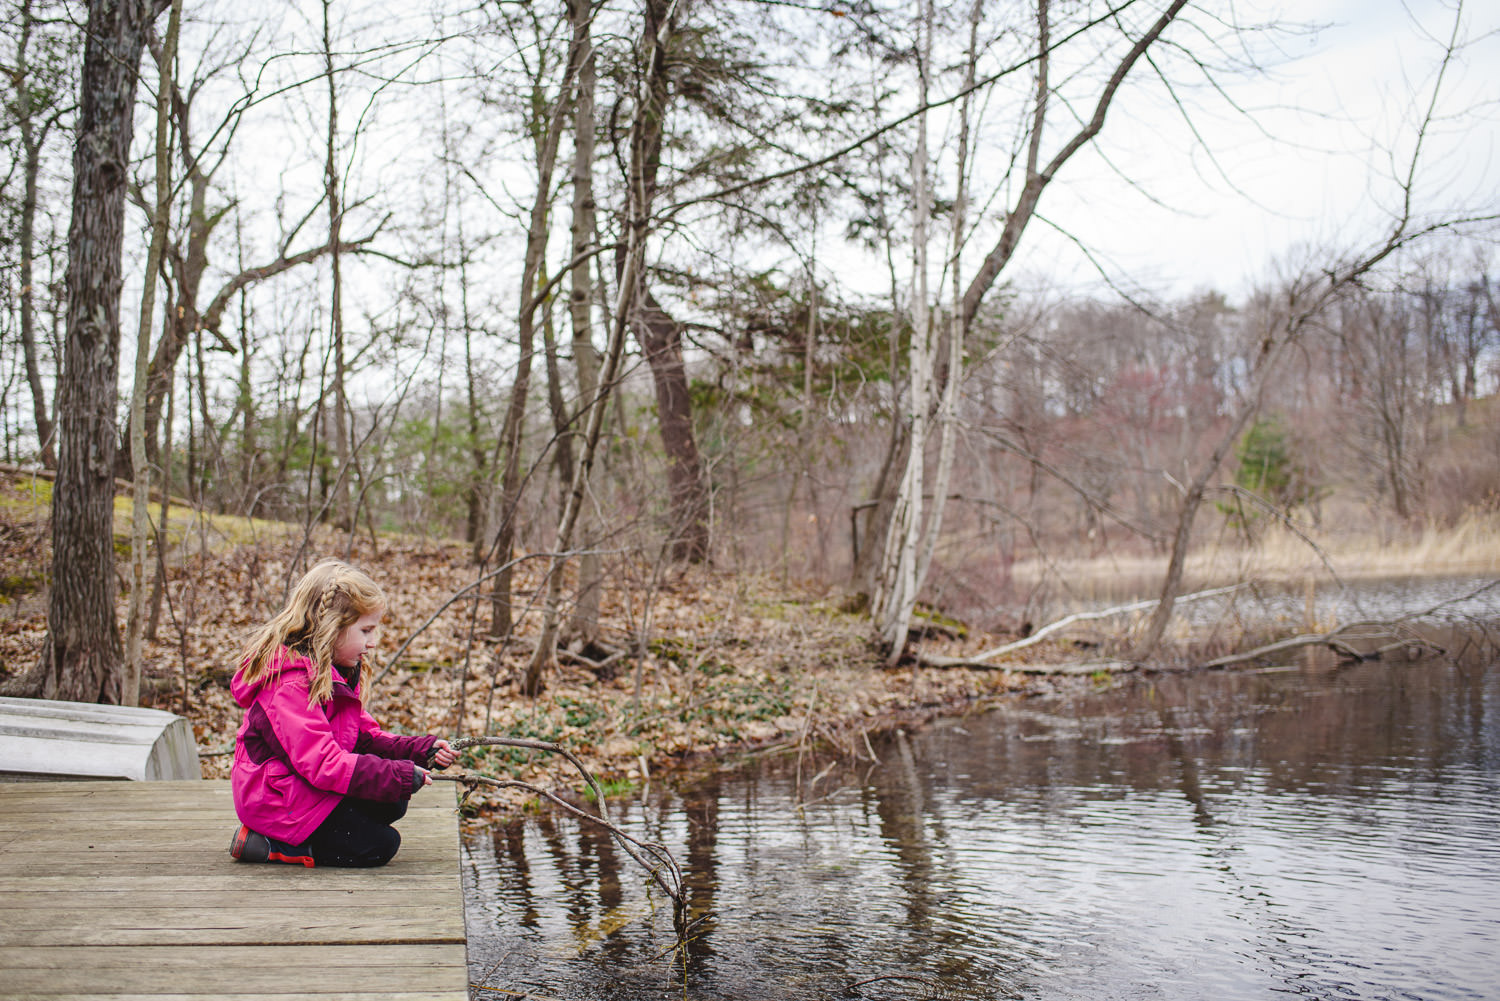 A little girl pretends to fish on a dock.